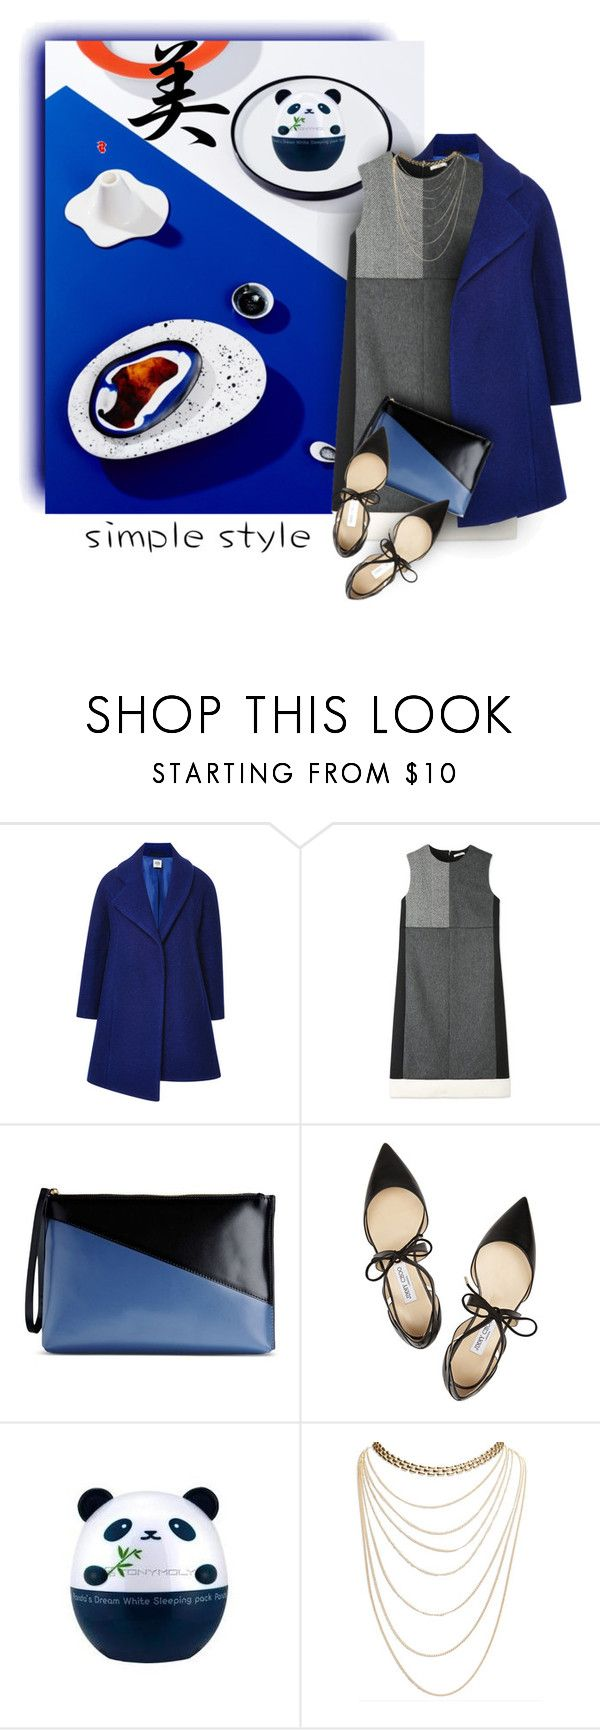 """""""simple style"""" by eilselrenrag ❤ liked on Polyvore featuring Opening Ceremony, Edun, Marni, Jimmy Choo, Tony Moly and Wet Seal"""